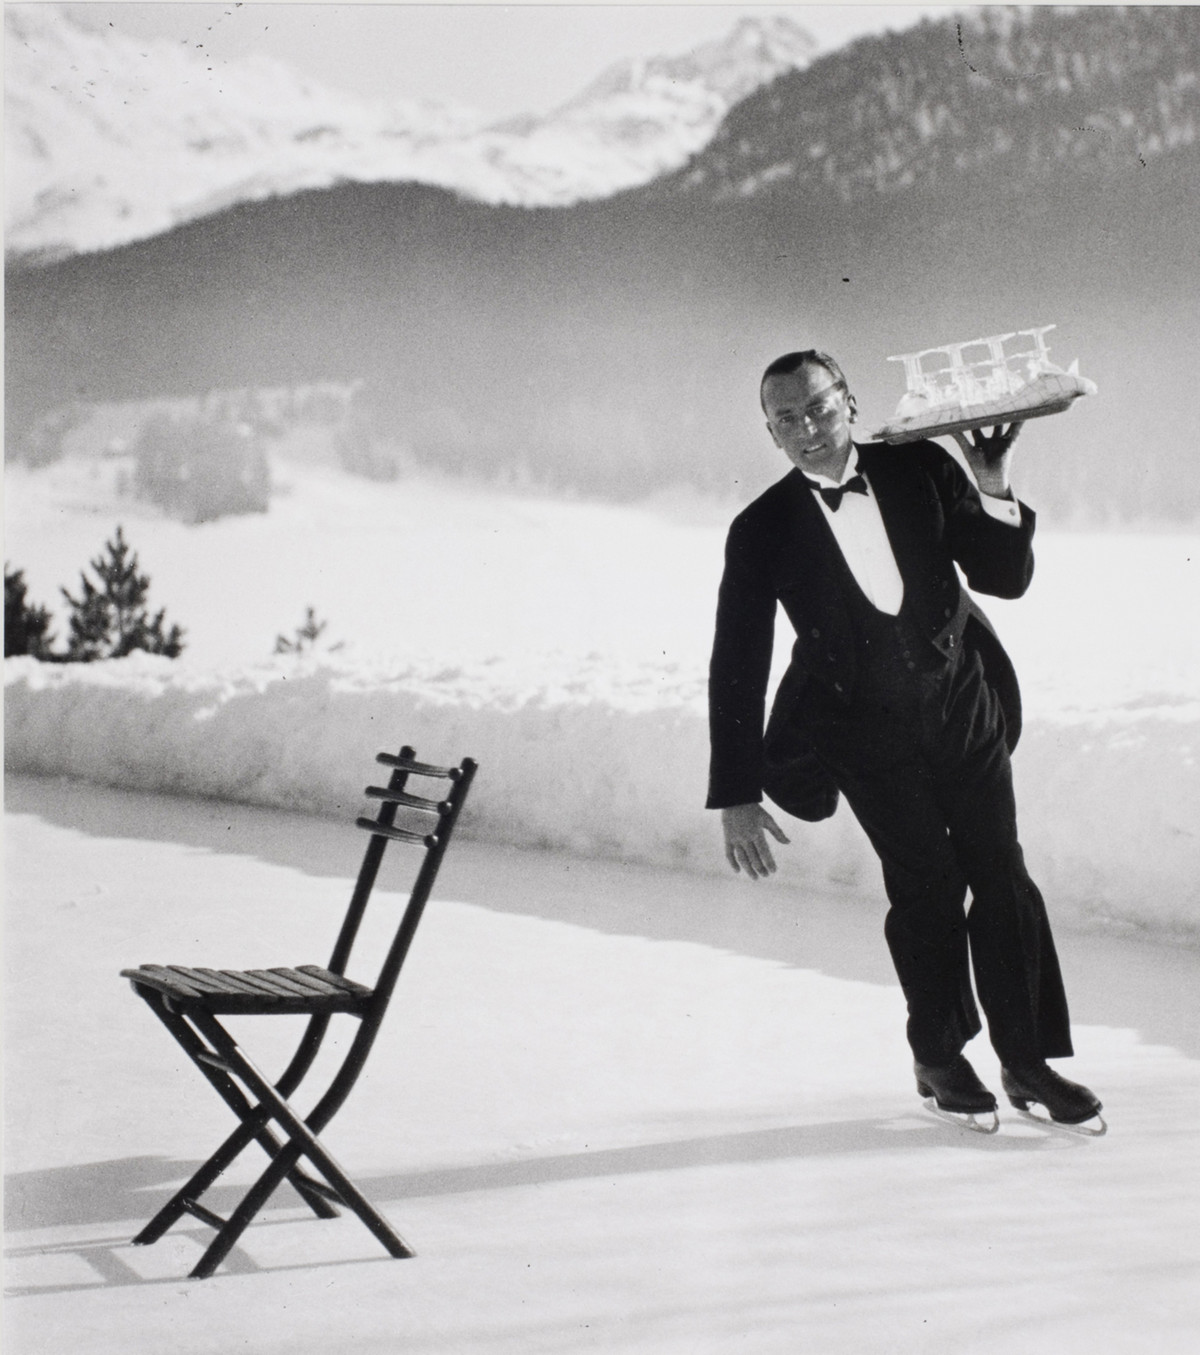 Senior waiter René Breguet from the Grand Hotel serving ice skating cocktails. The commune of St. Moritz in Switzerland, 1932.